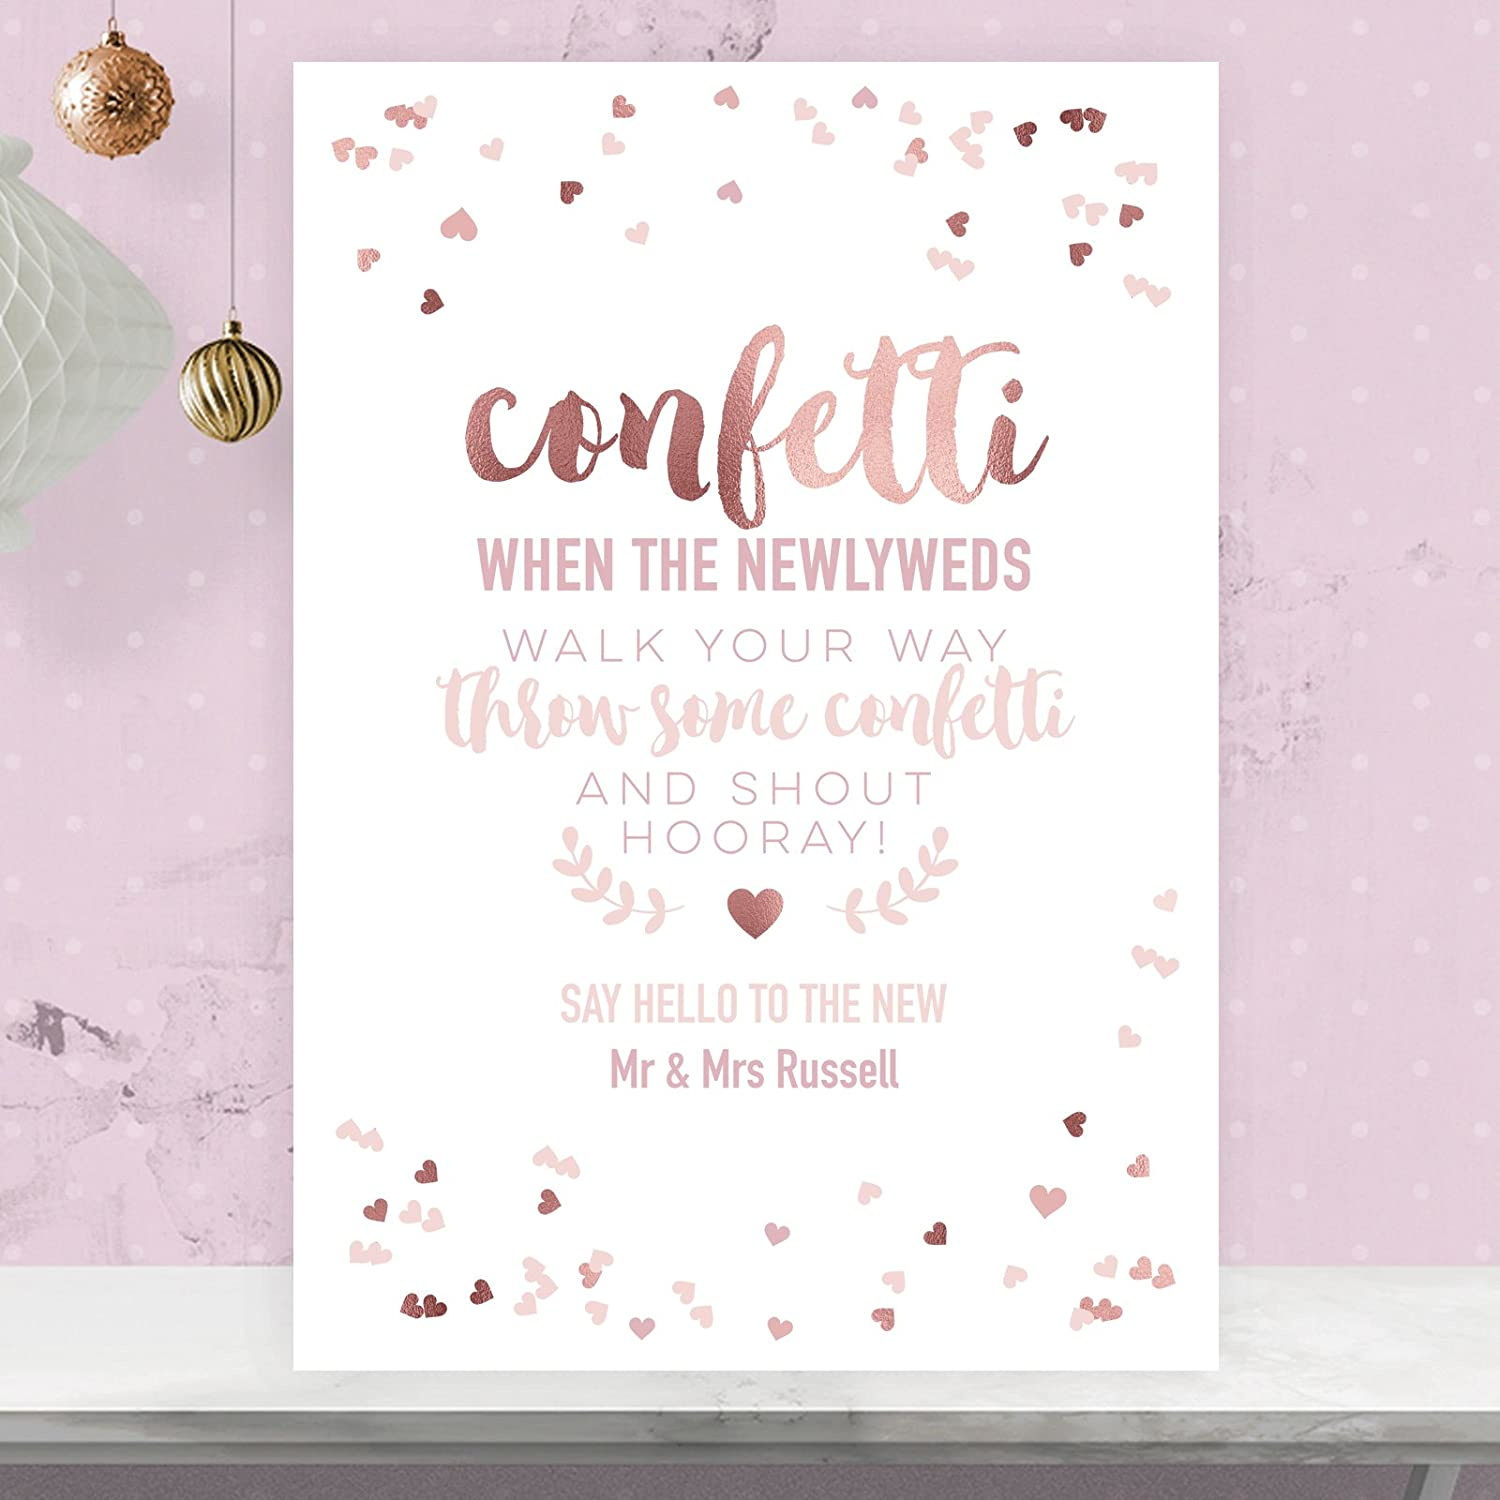 Personalised Confetti Wedding Sign In Rose Gold Effect and Blush Pink RGP11